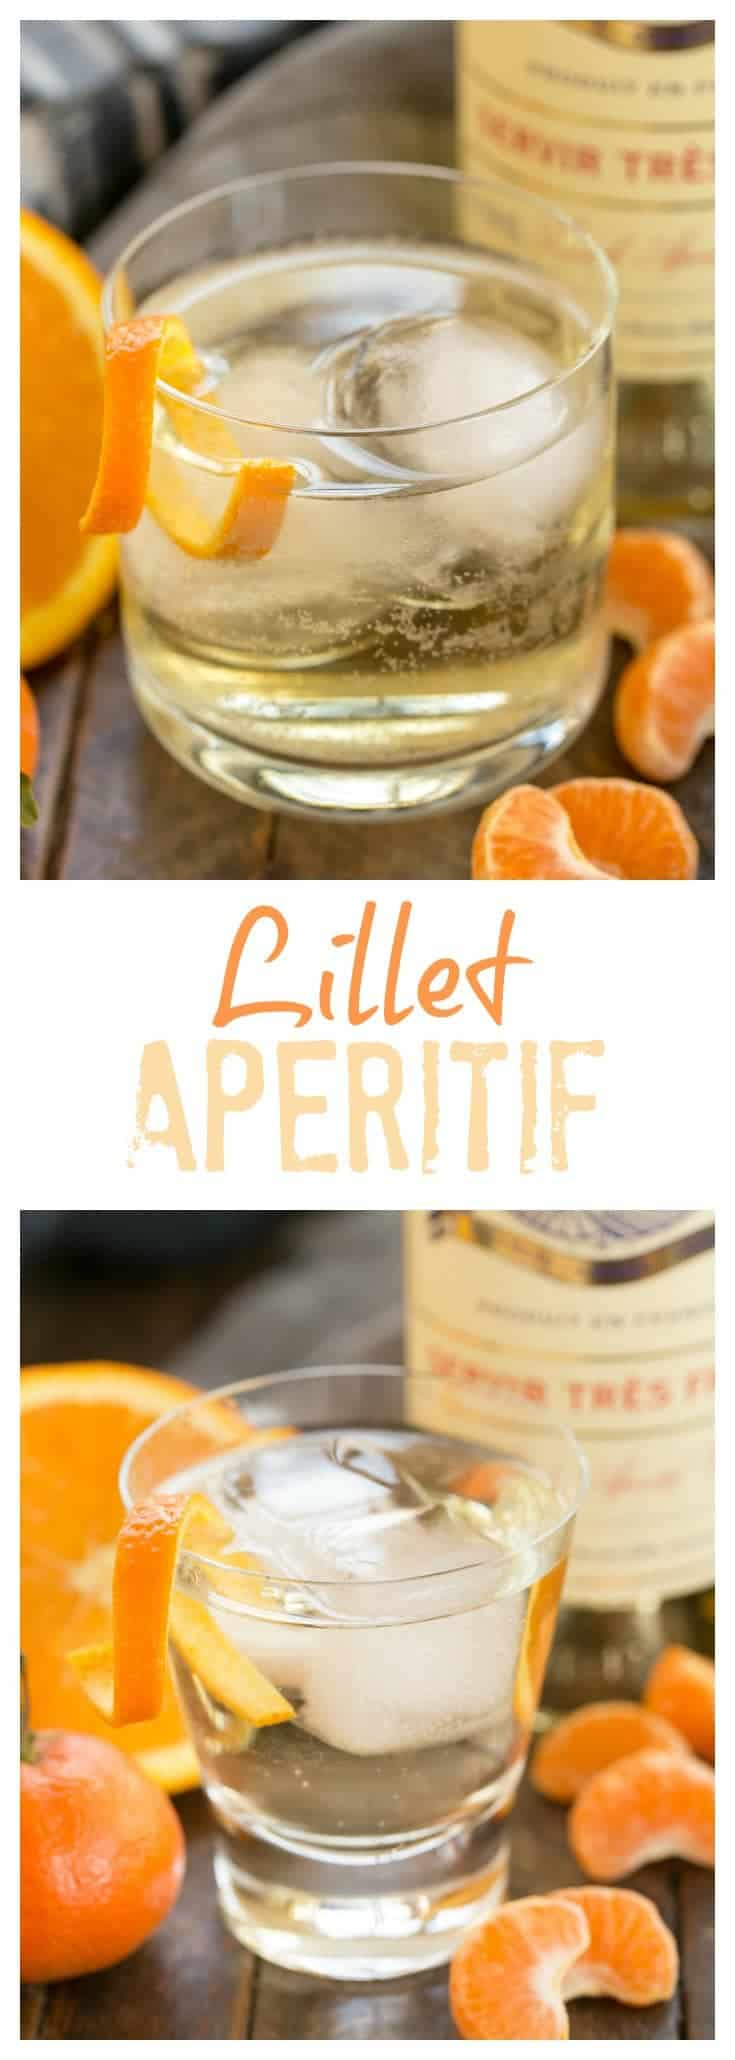 Lillet French Aperitif with an Orange Twist, a refreshing cocktail of Lillet Blanc and soda. #cocktail #orange #Lilletblanc